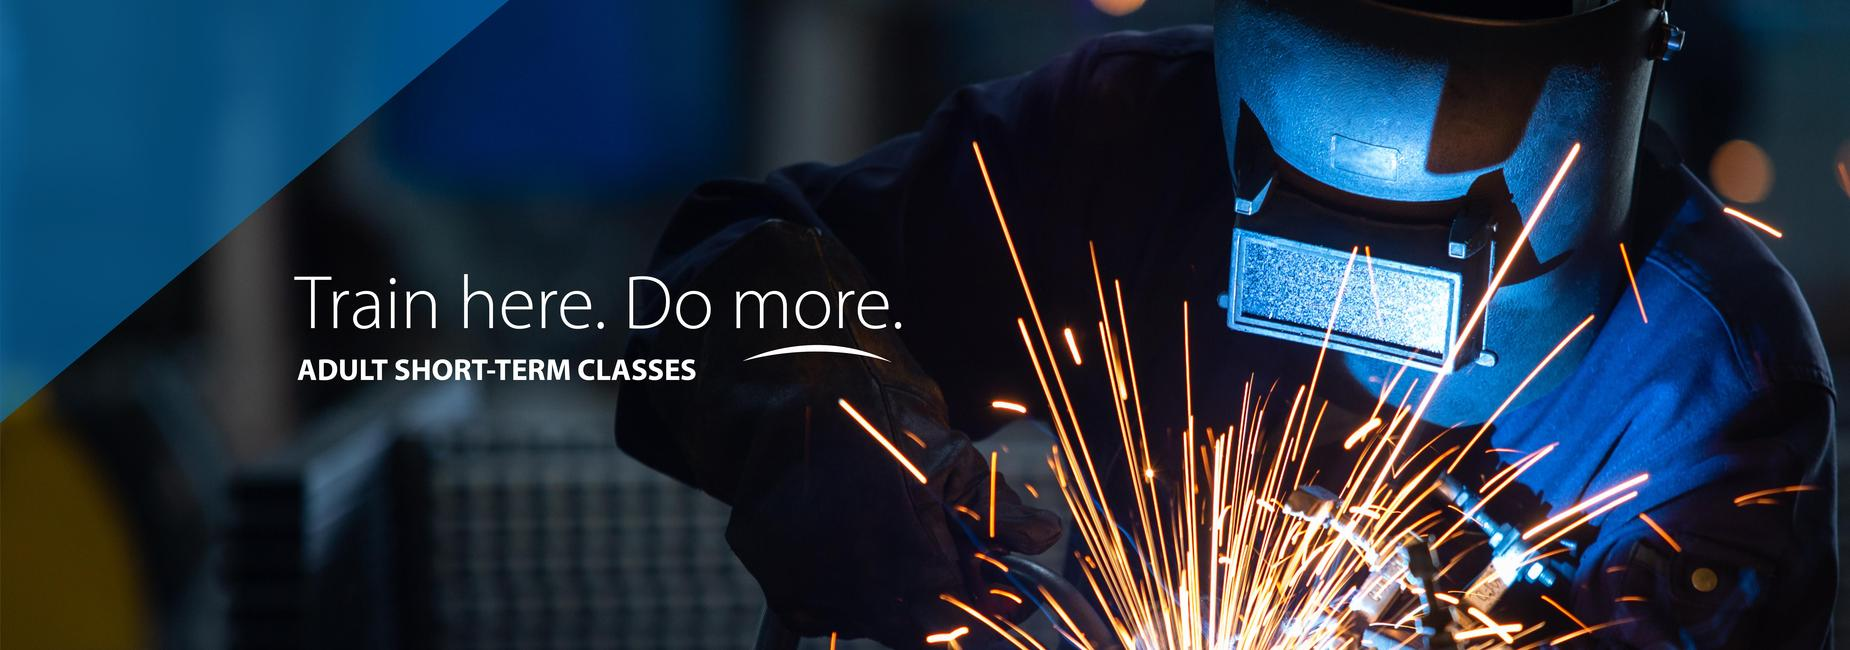 Image of a person welding with sparks flying and text that reads: Train here. Do more. Adult short-term classes